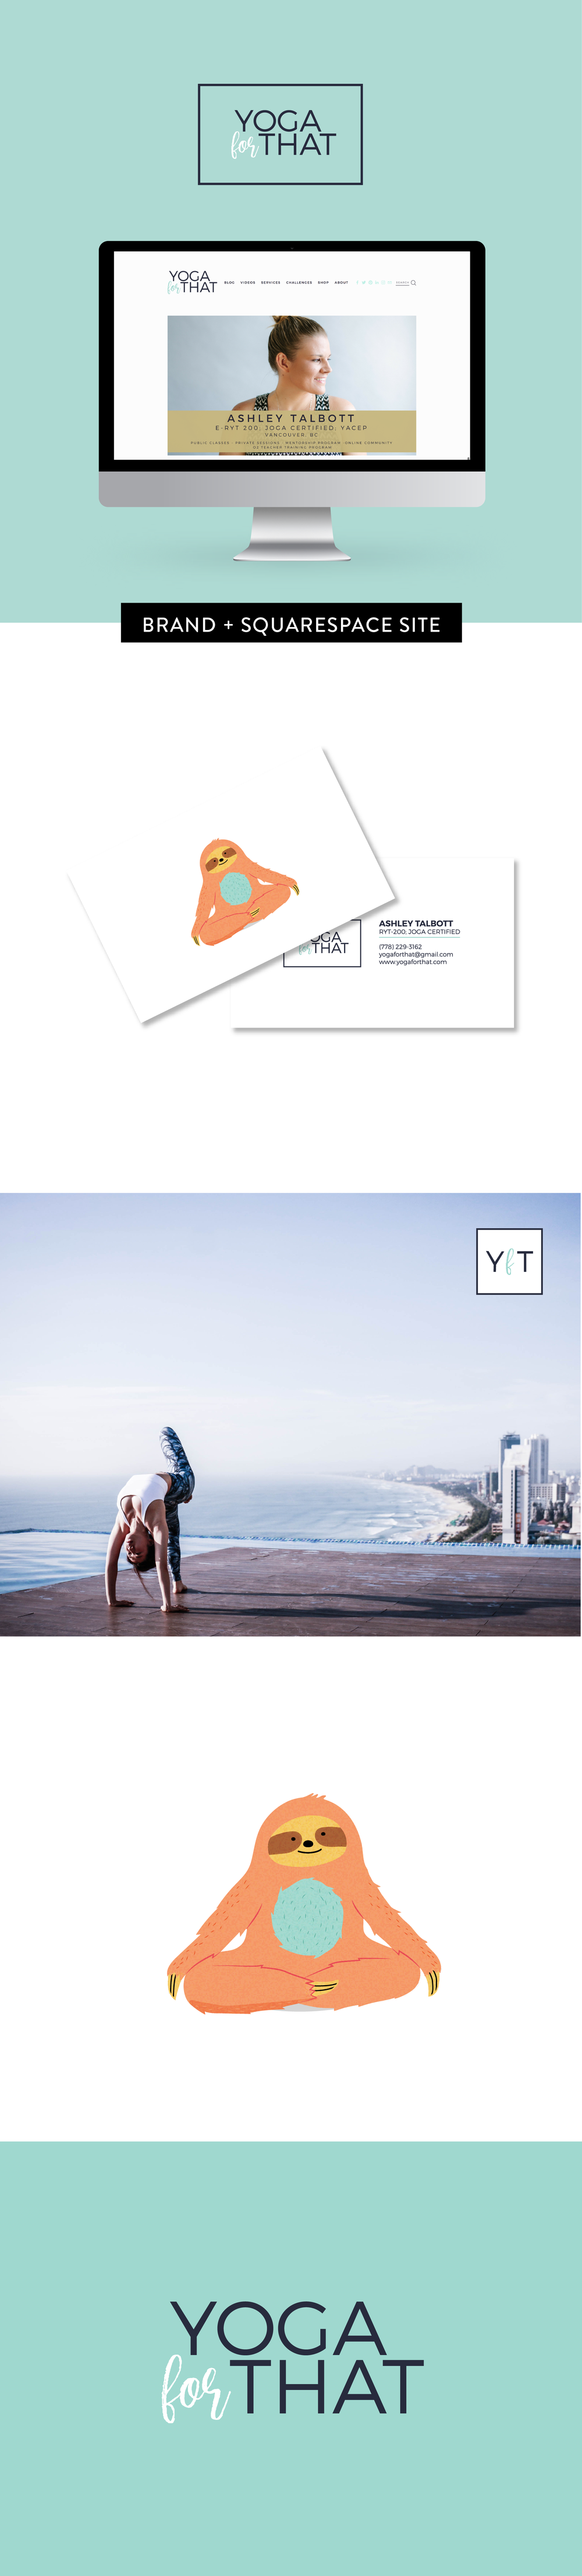 Brand and Squarespace web design for Yoga For That by Salt Design Co.